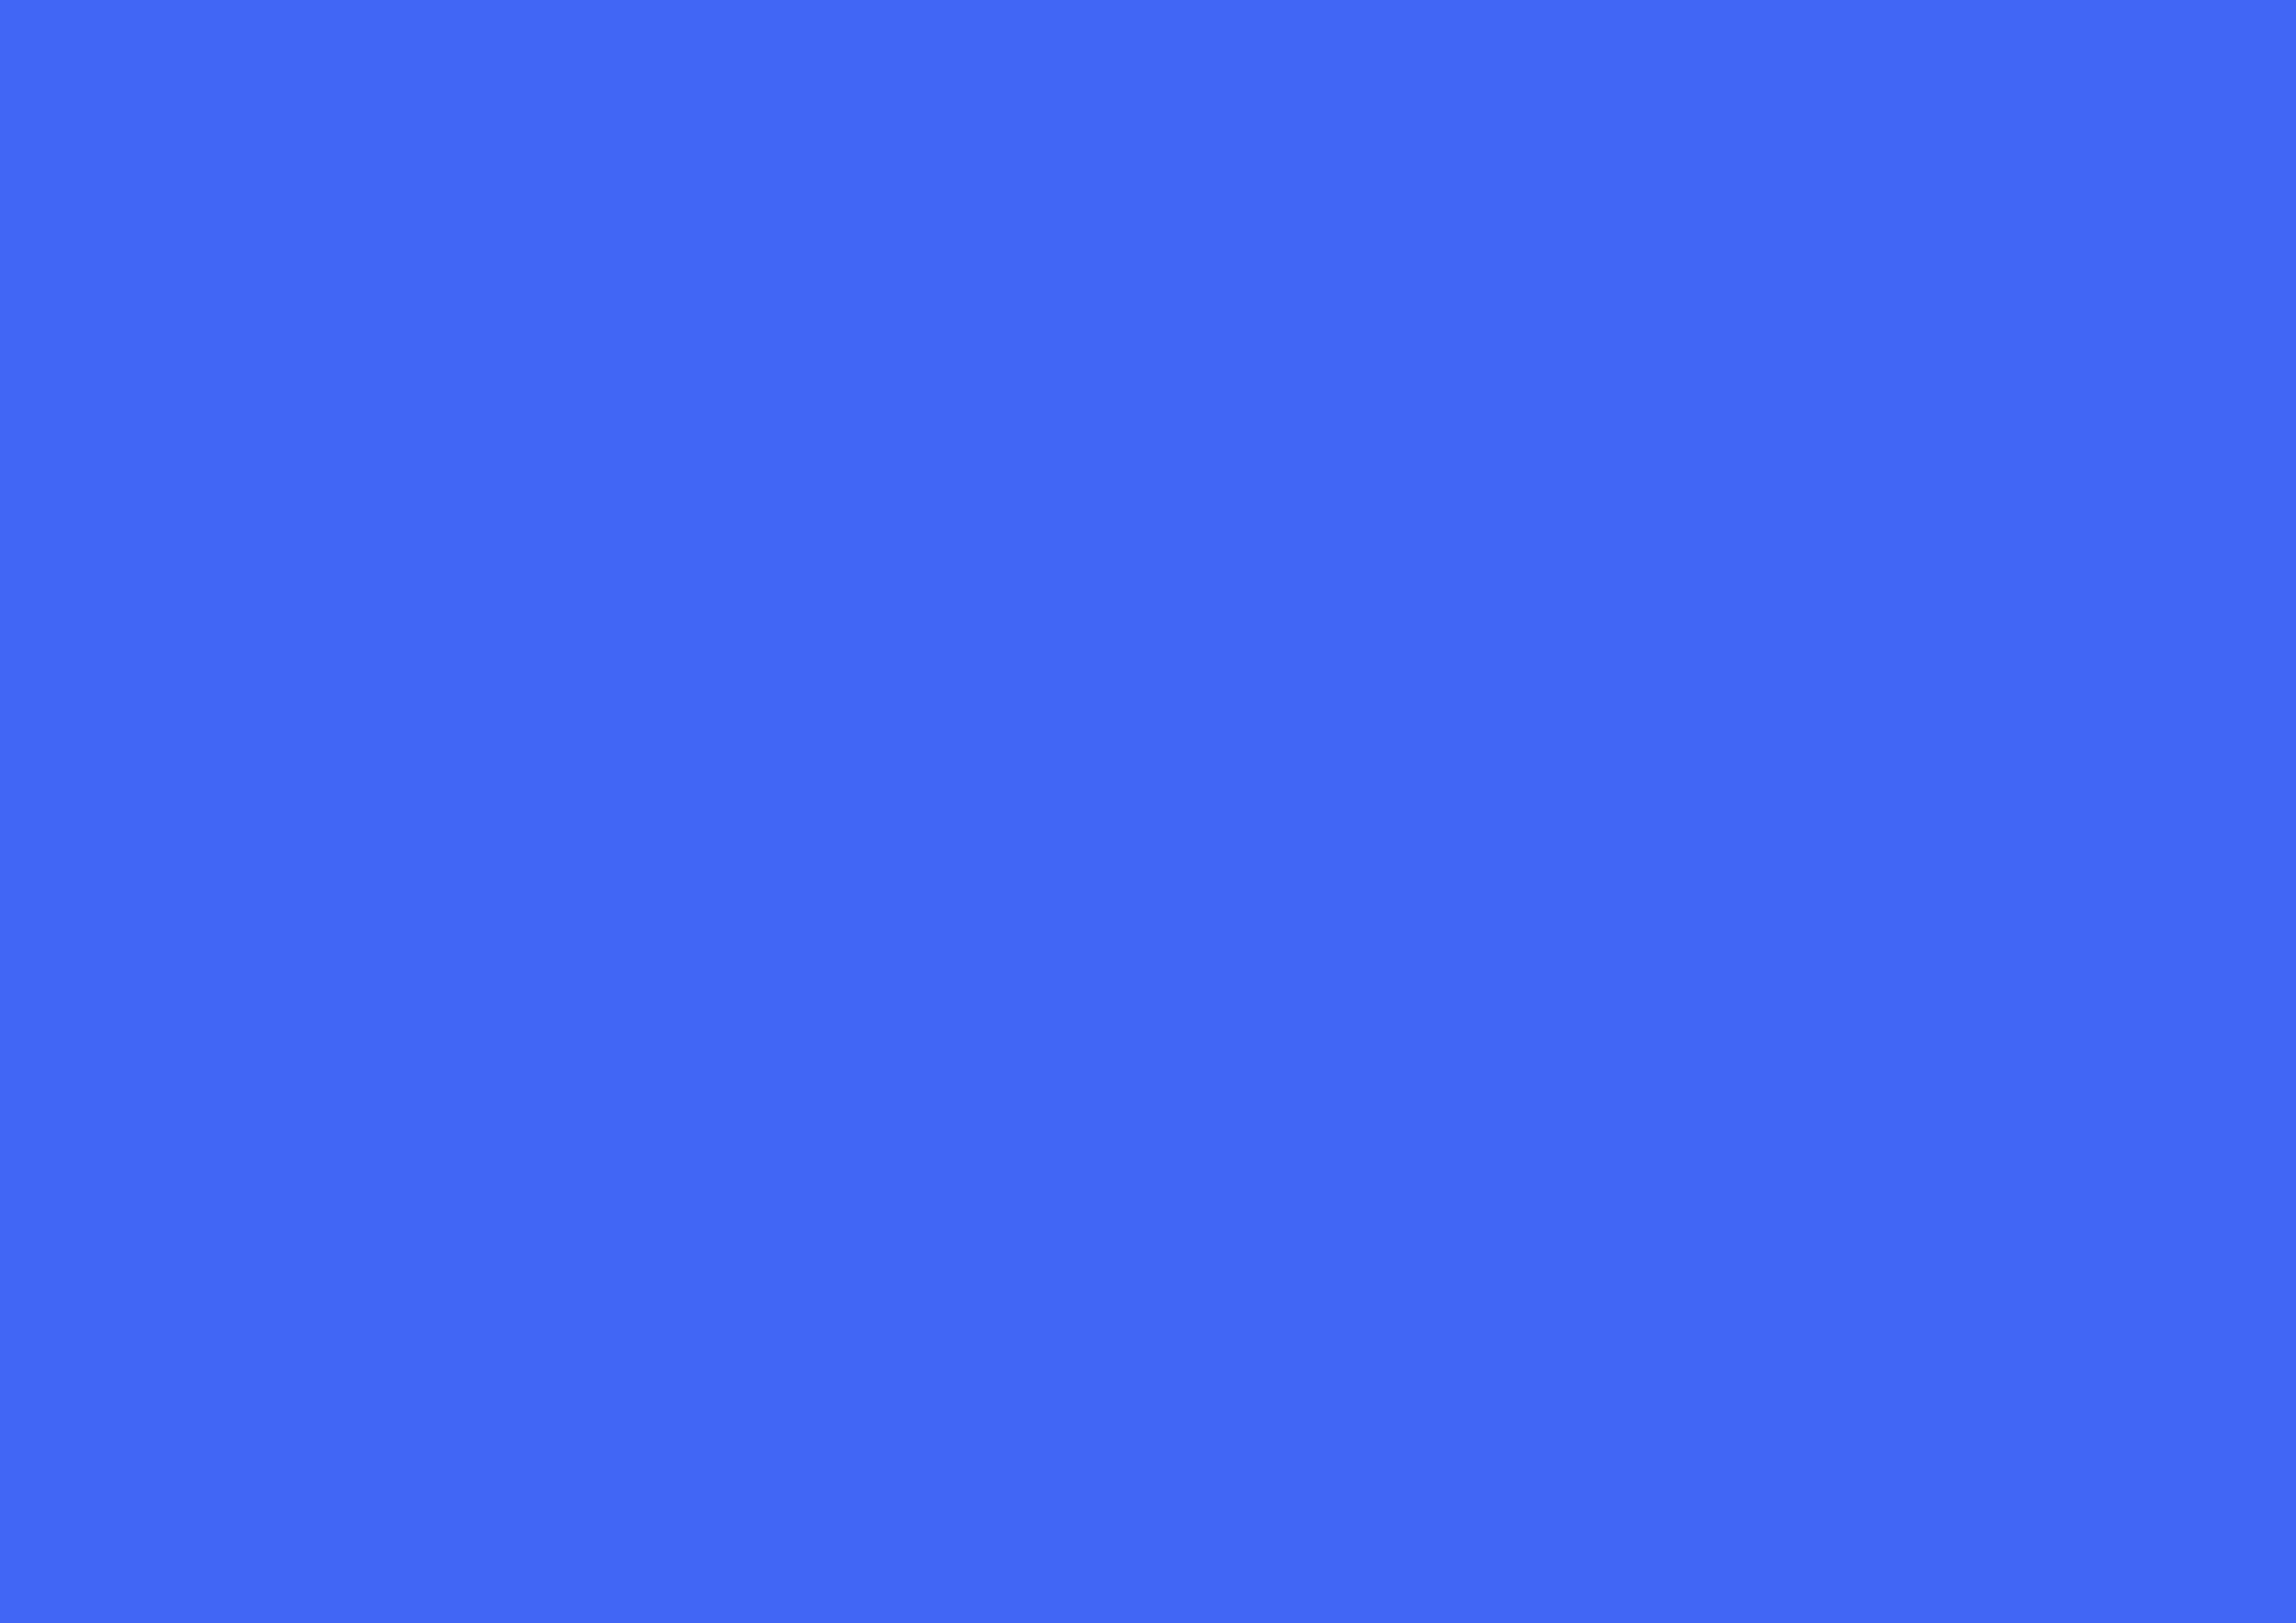 3508x2480 Ultramarine Blue Solid Color Background